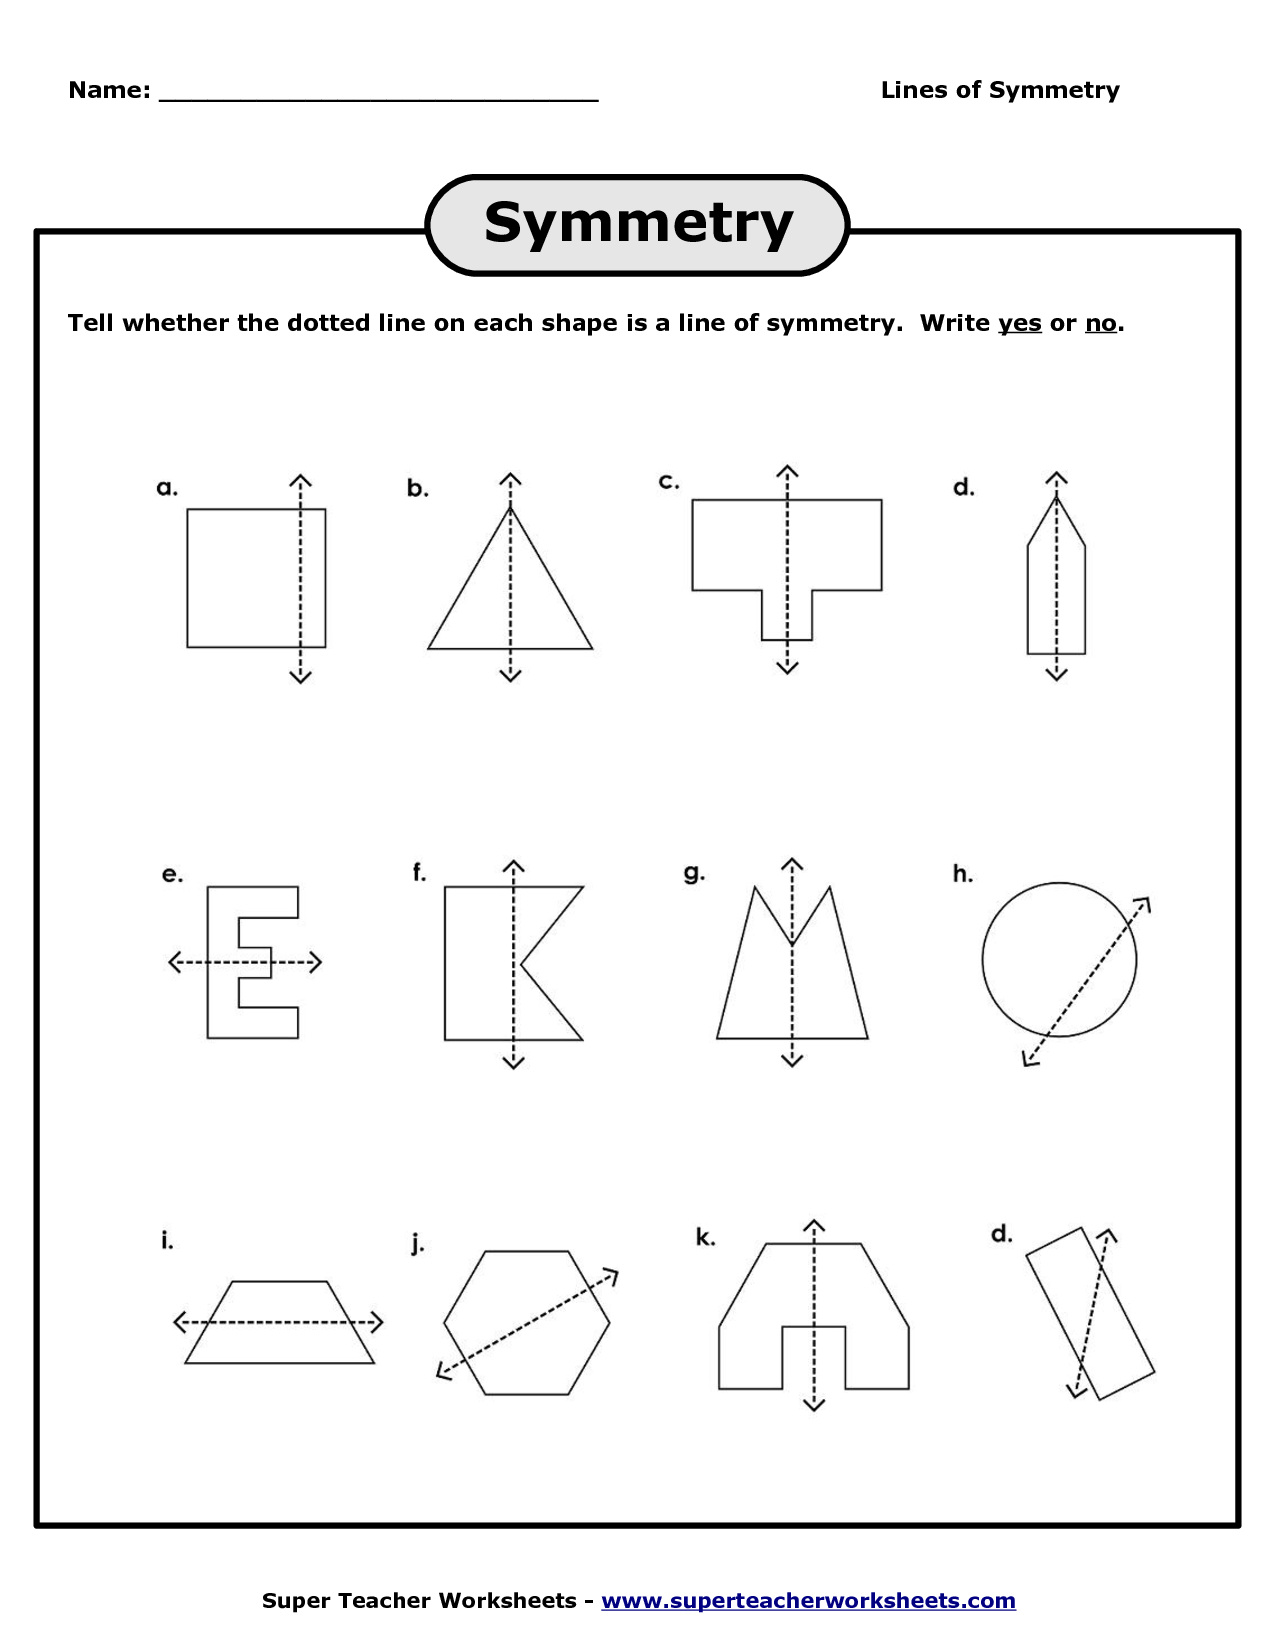 Lines Of Symmetry Worksheets Lines Of Symmetry Worksheet